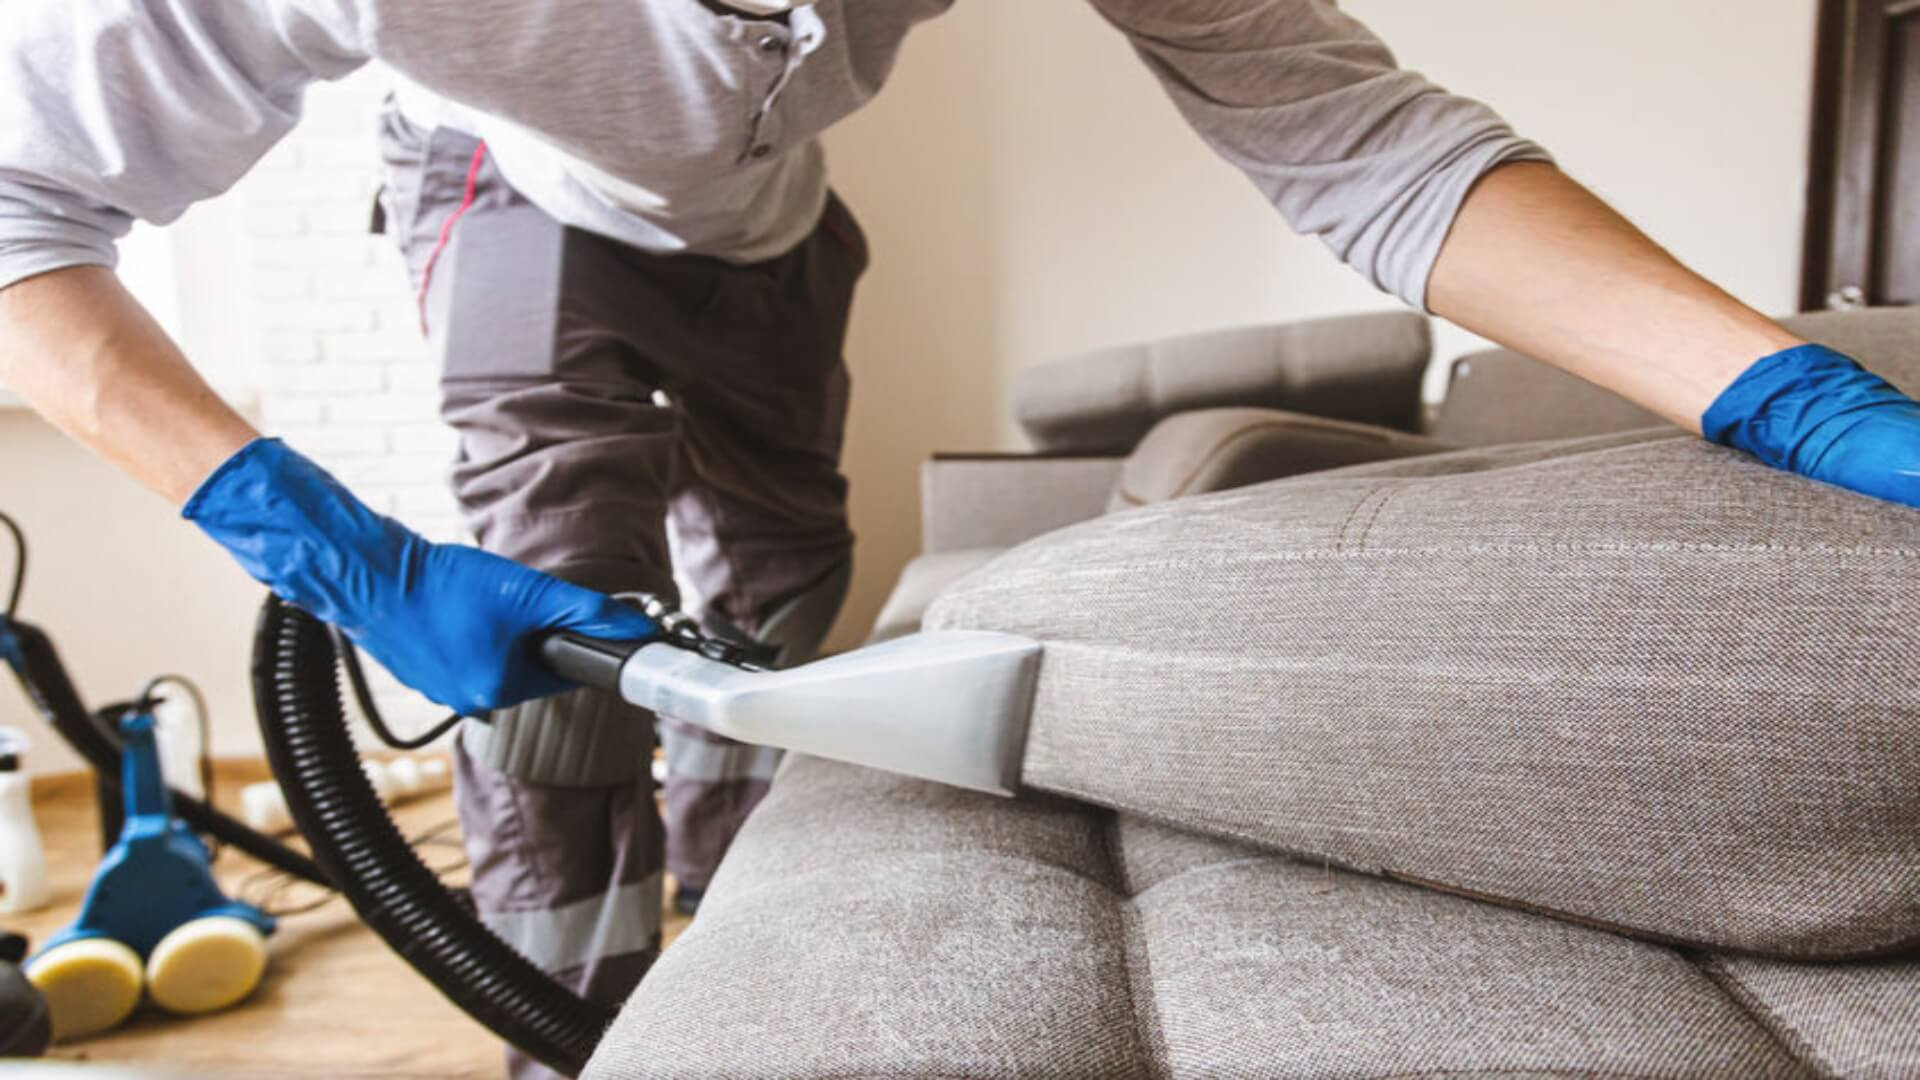 Professional cleaning of the sofa upholstery. The man is cleaning the upholstery with a vacuum cleaner. pholstery cleaner to hire.